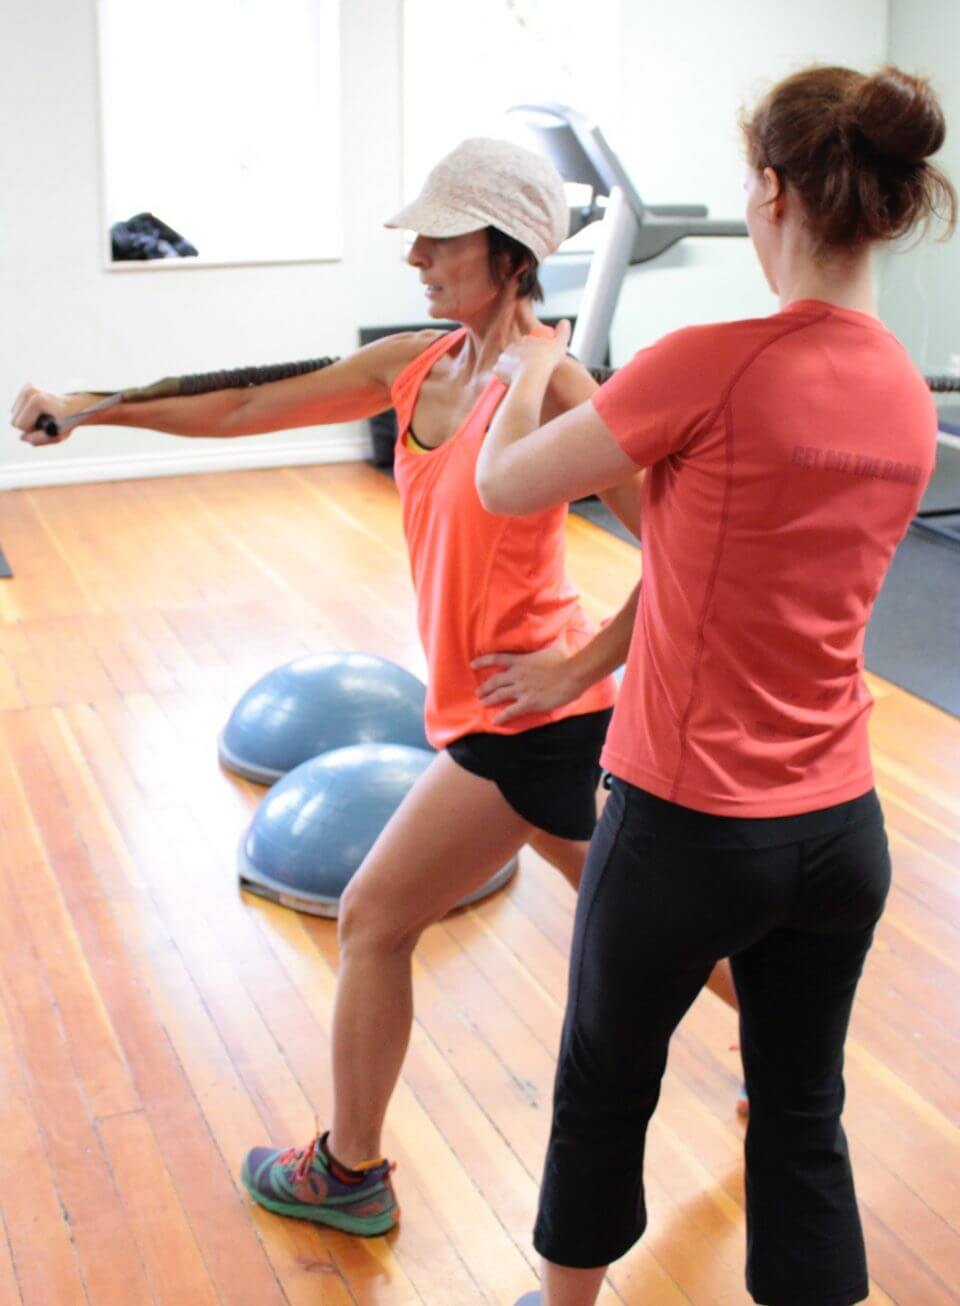 Personal Trainer at Breathe Fitness helping a client